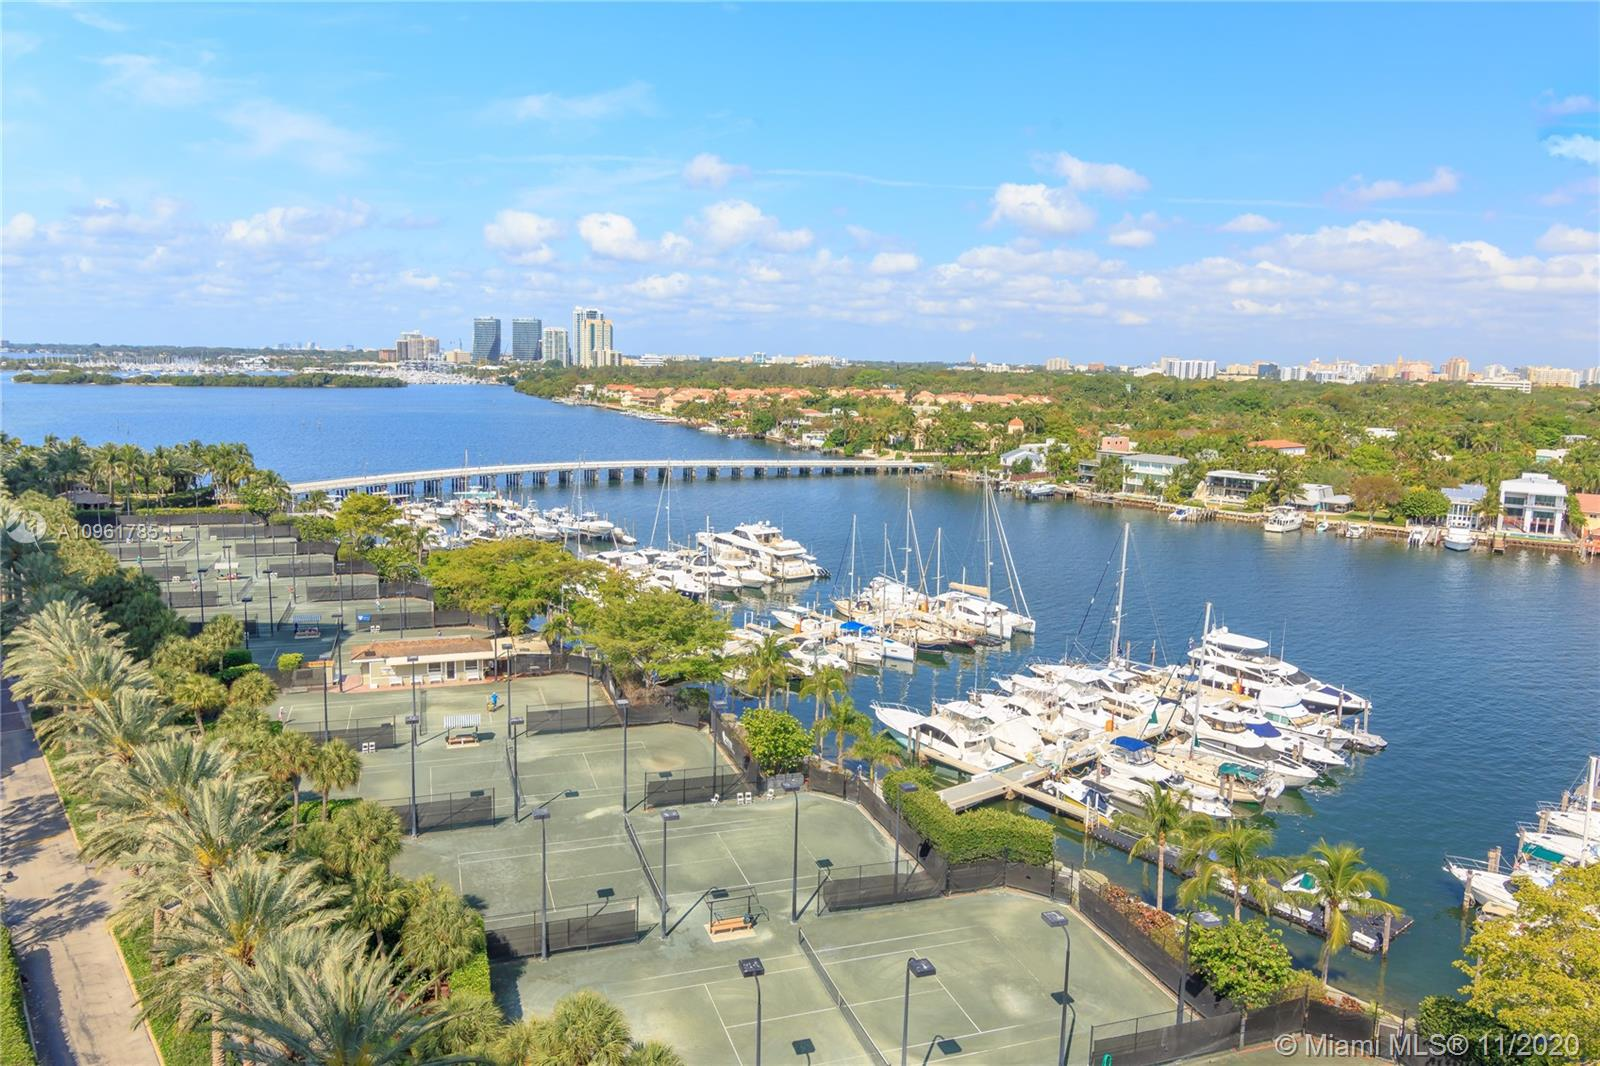 3 Grove Isle Dr # C1210, Miami, Florida 33133, 3 Bedrooms Bedrooms, ,3 BathroomsBathrooms,Residential,For Sale,3 Grove Isle Dr # C1210,A10961785